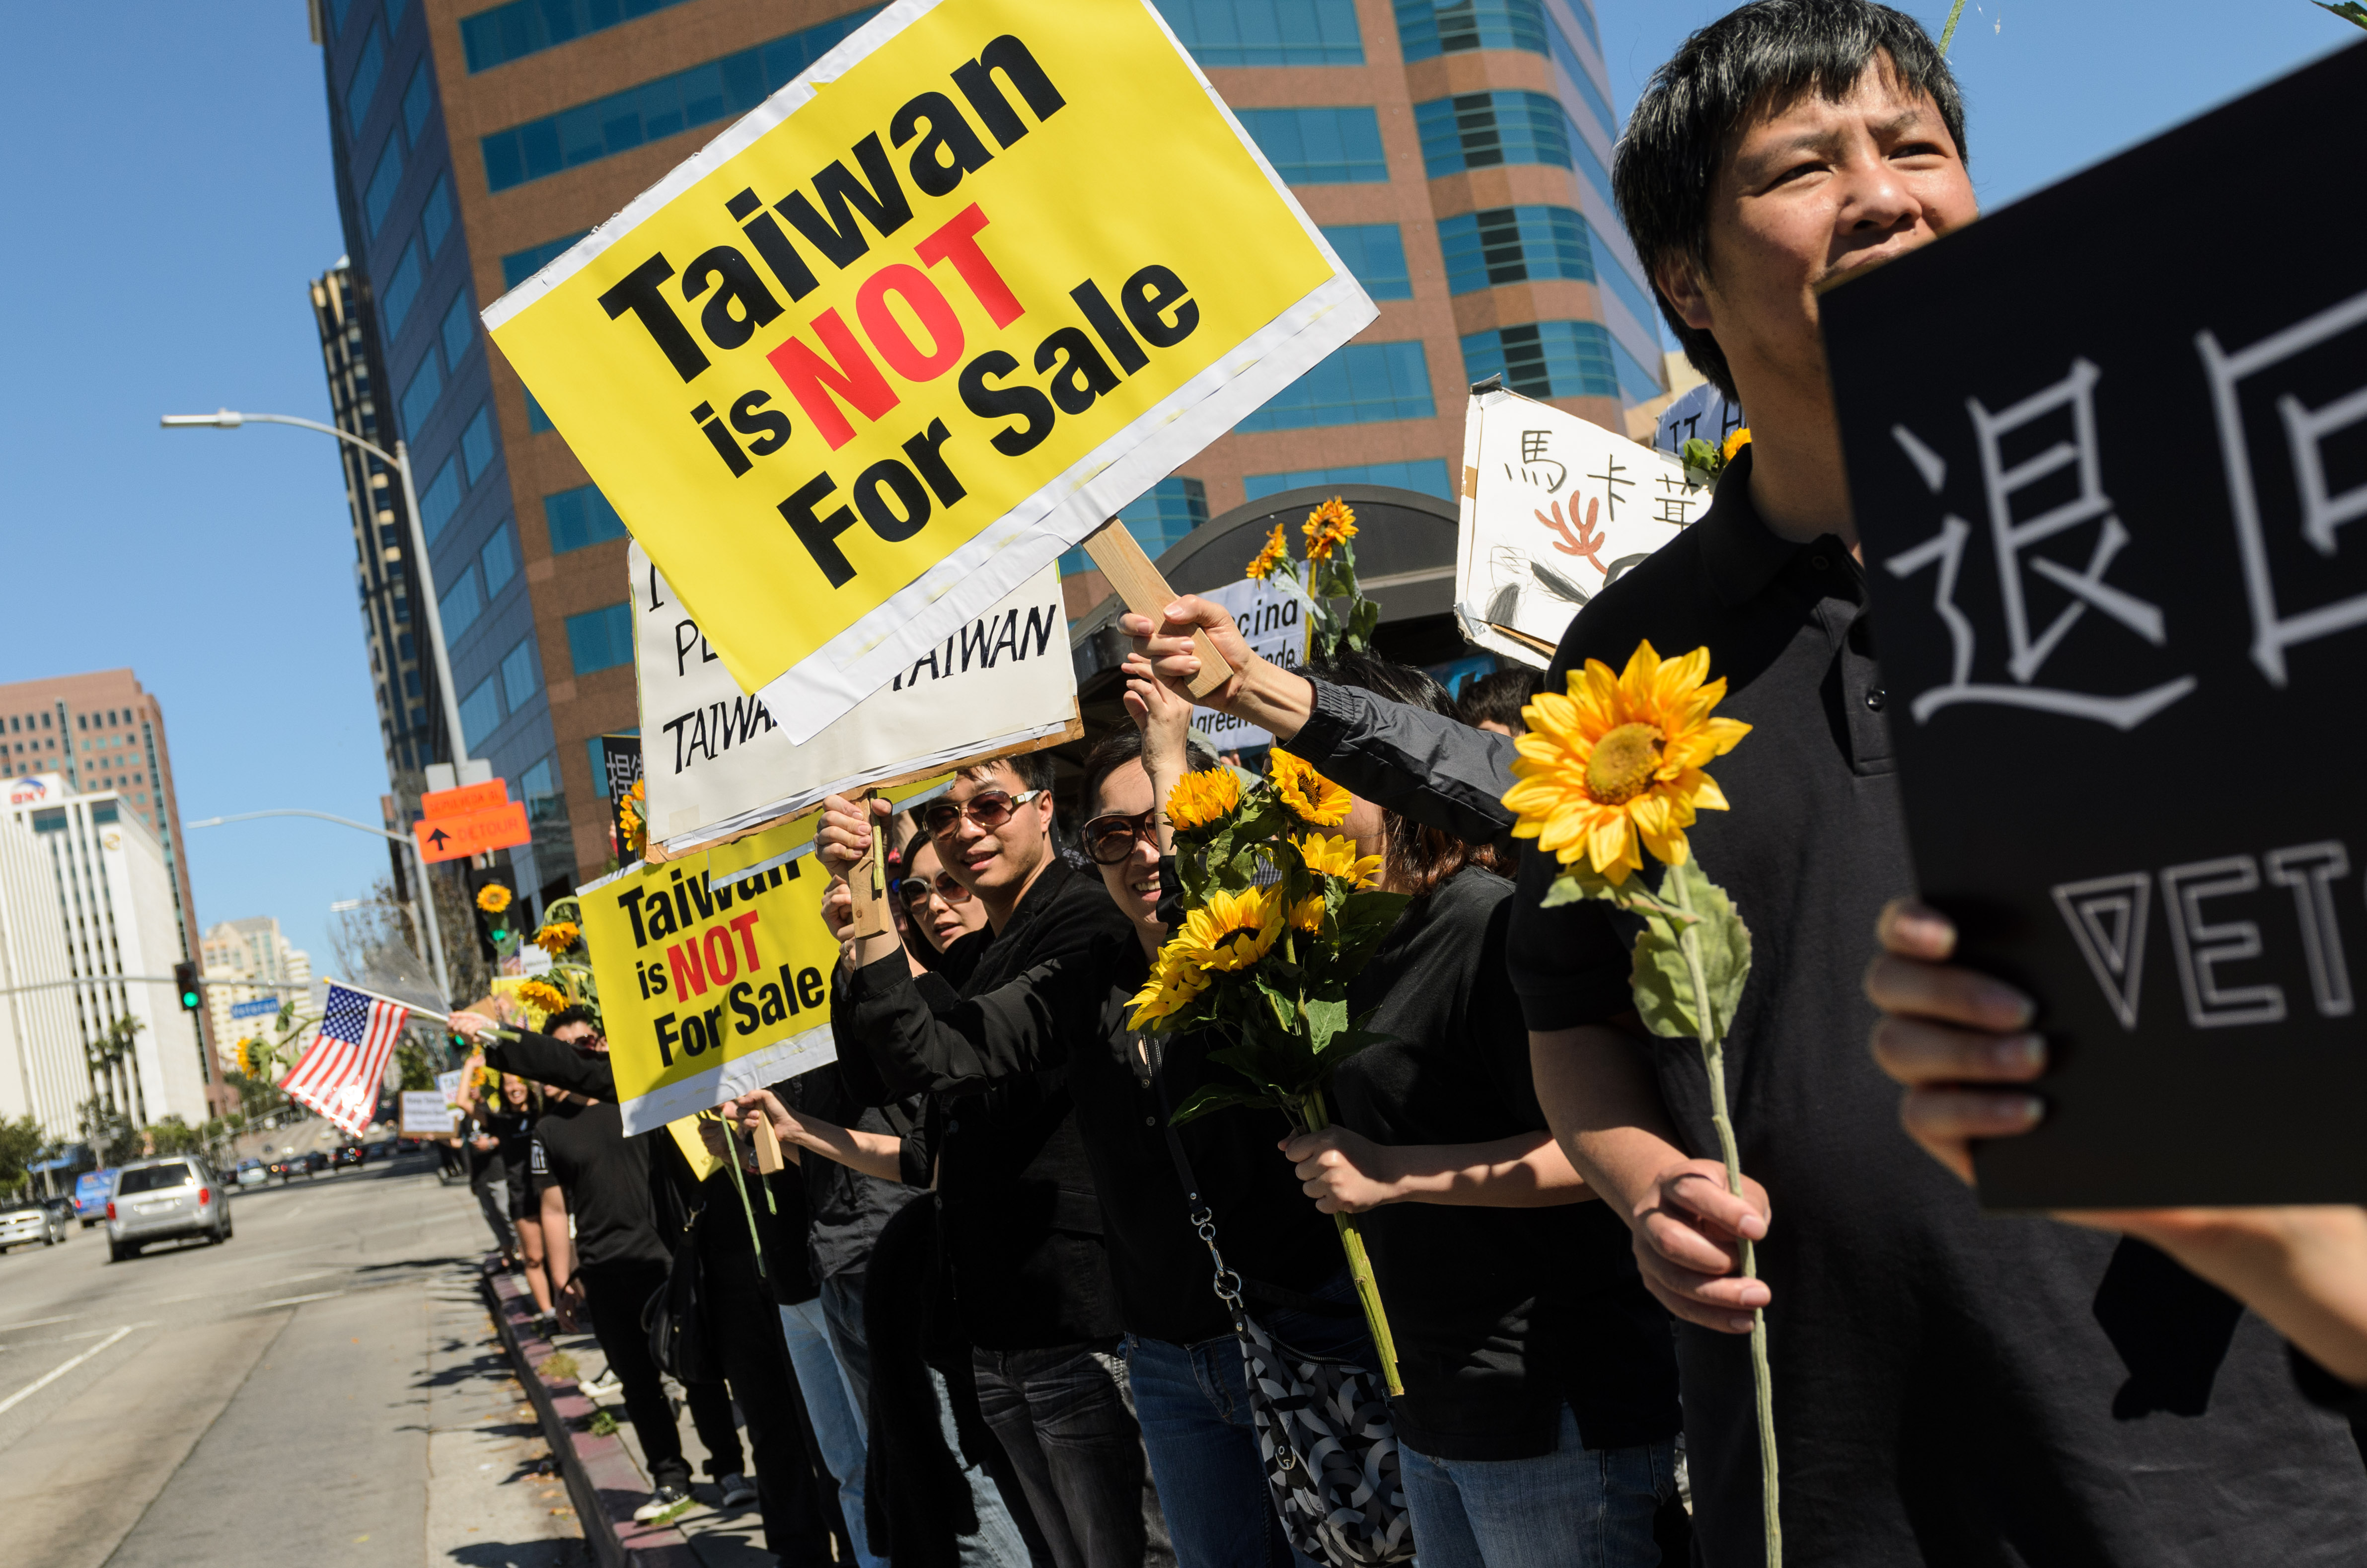 Maybe doubt sown by the Trumping of Taiwan can be productive for Catholics